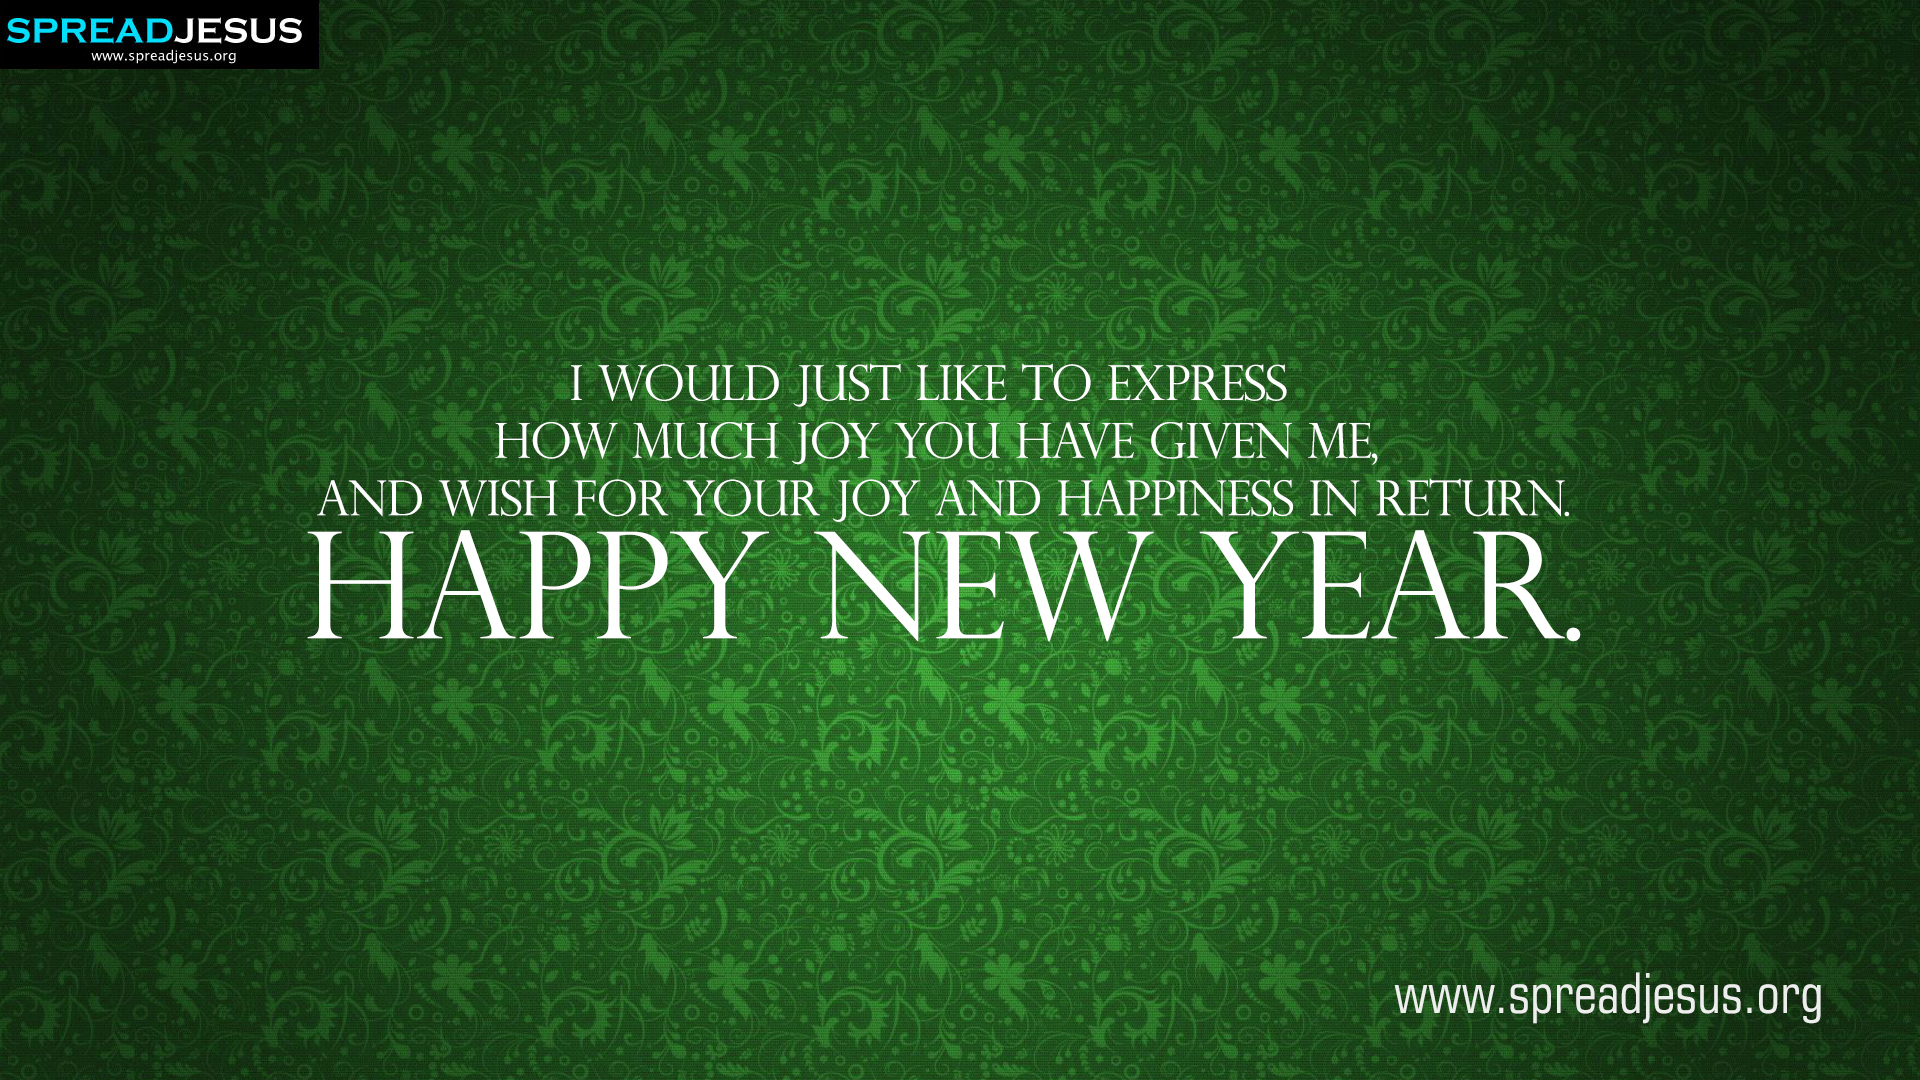 hd wallpaper happy new year